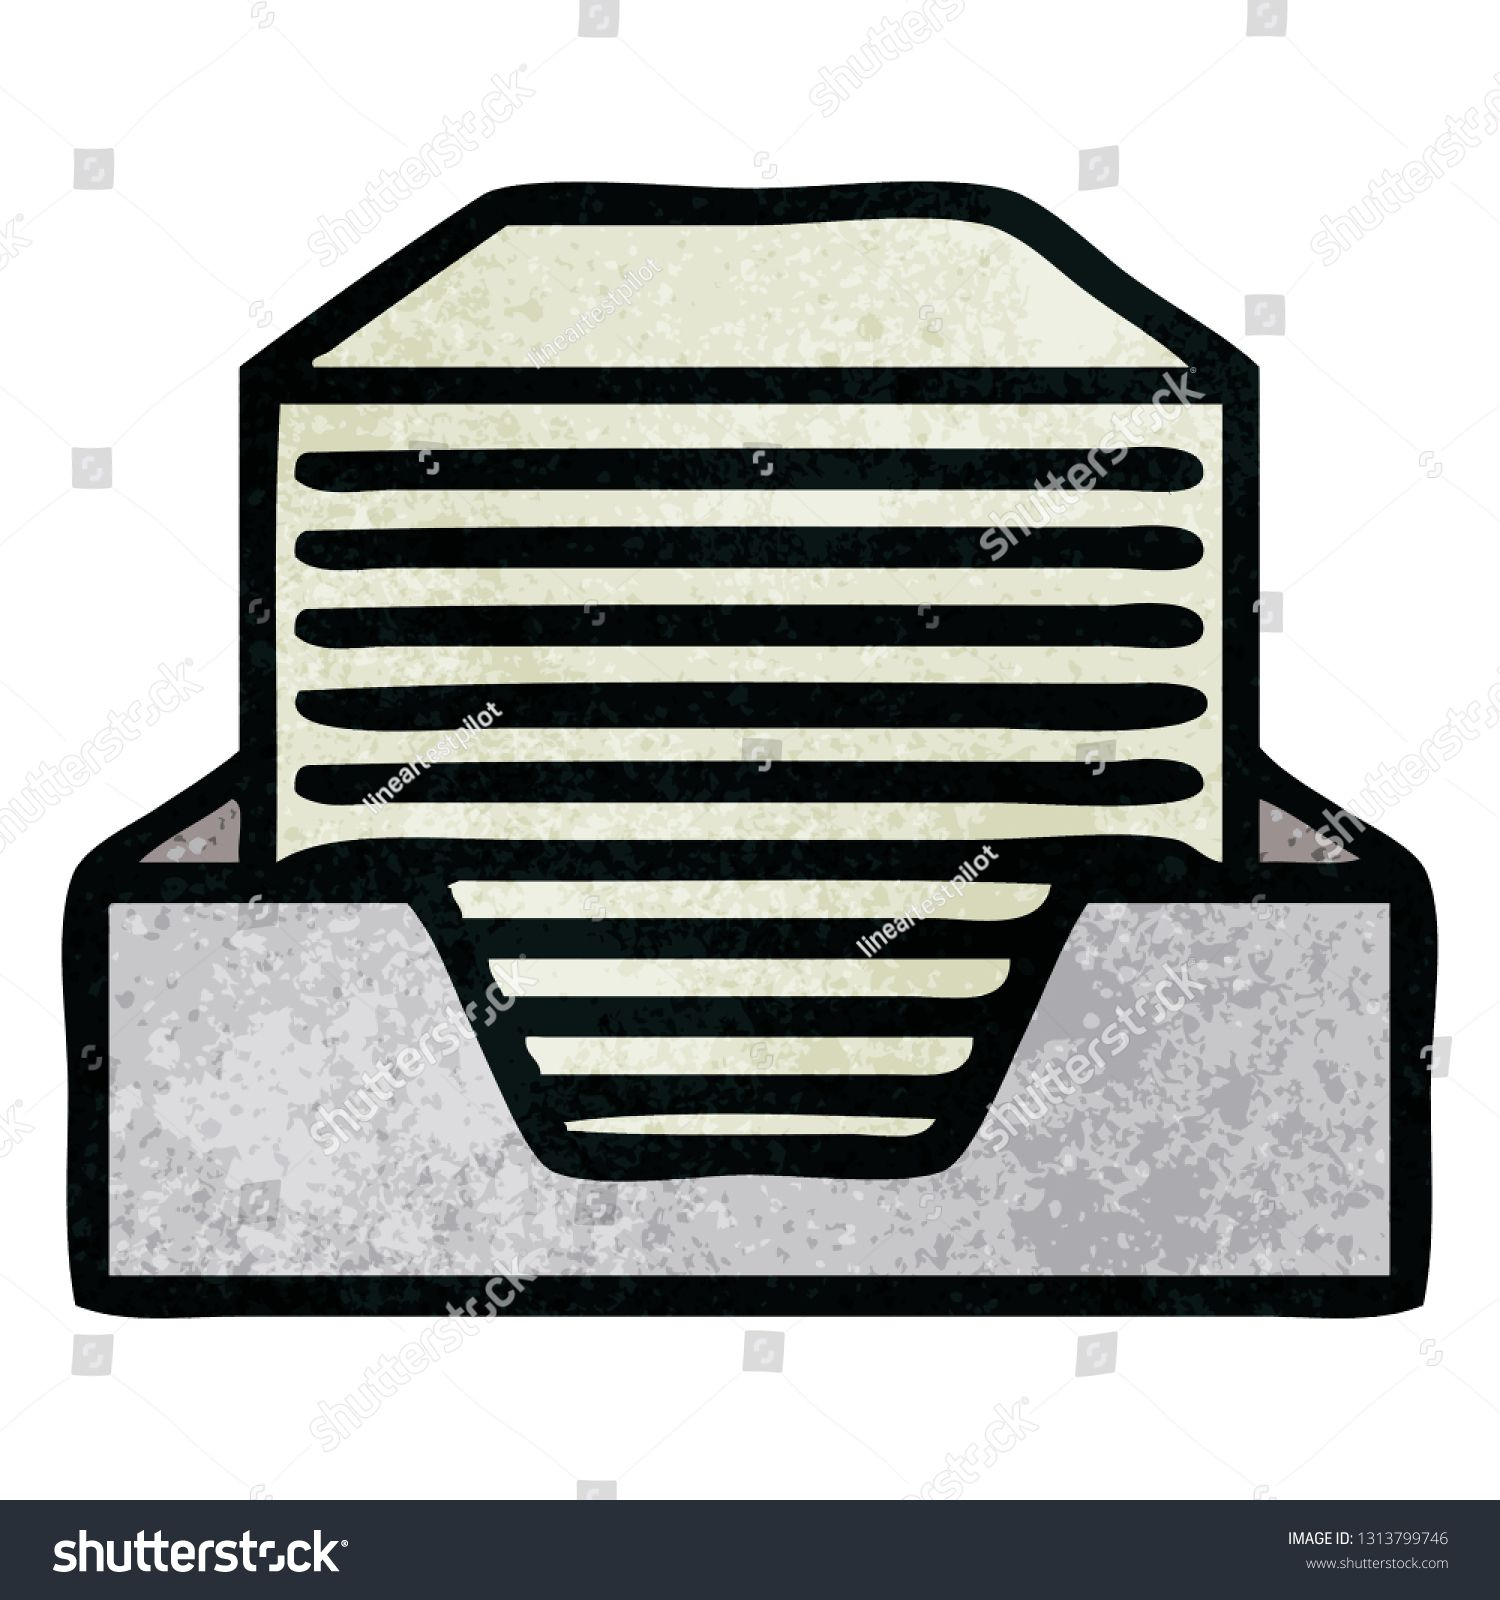 Retro Grunge Texture Cartoon Of A Stack Of Office Papers Ad Sponsored Texture Grunge Retro Cartoon Happy New Year Cards New Year Card Retro Cartoons